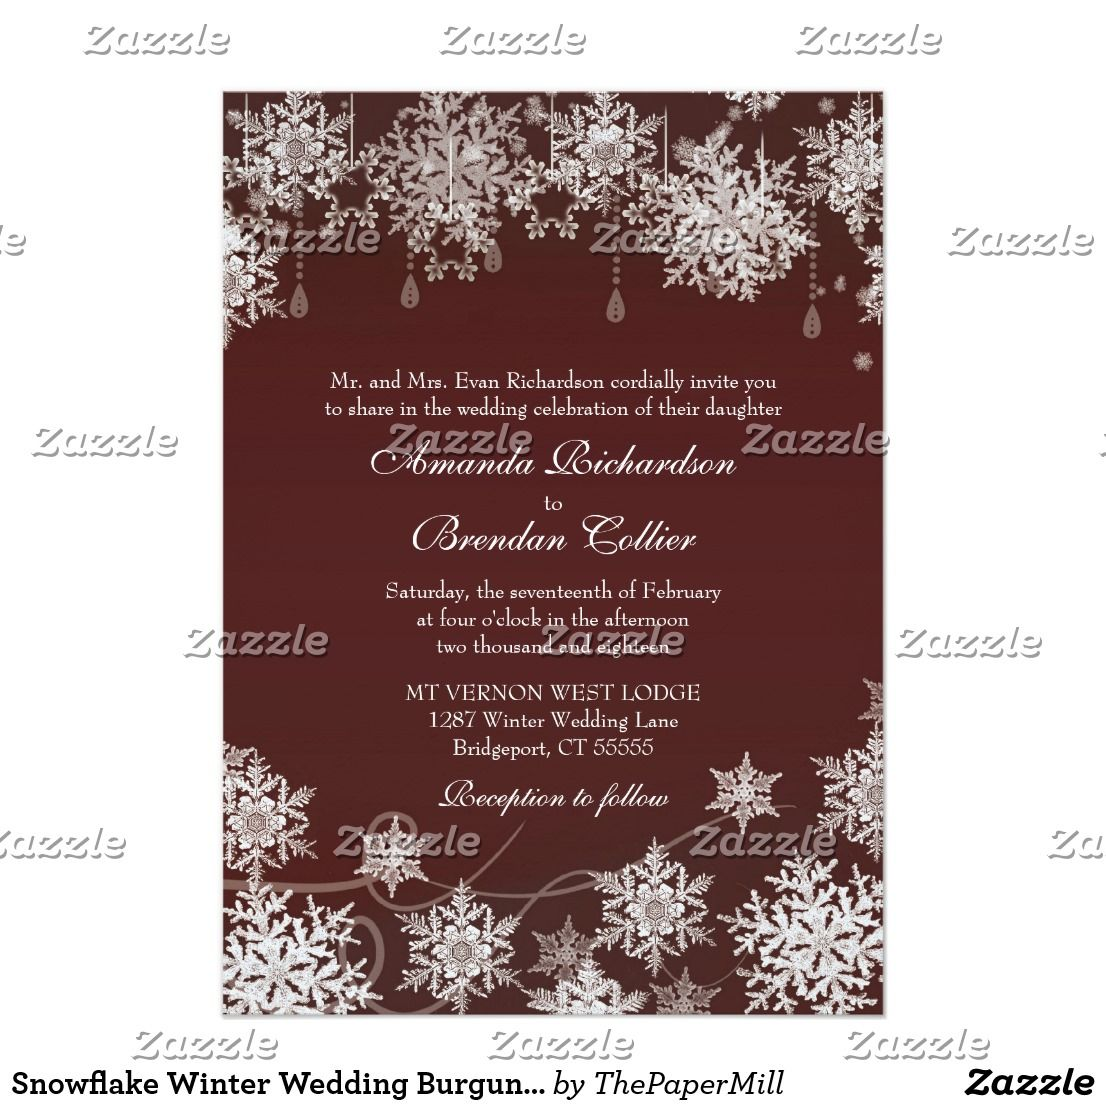 Snowflake Winter Wedding Burgundy Red and White Invitation | Wedding ...